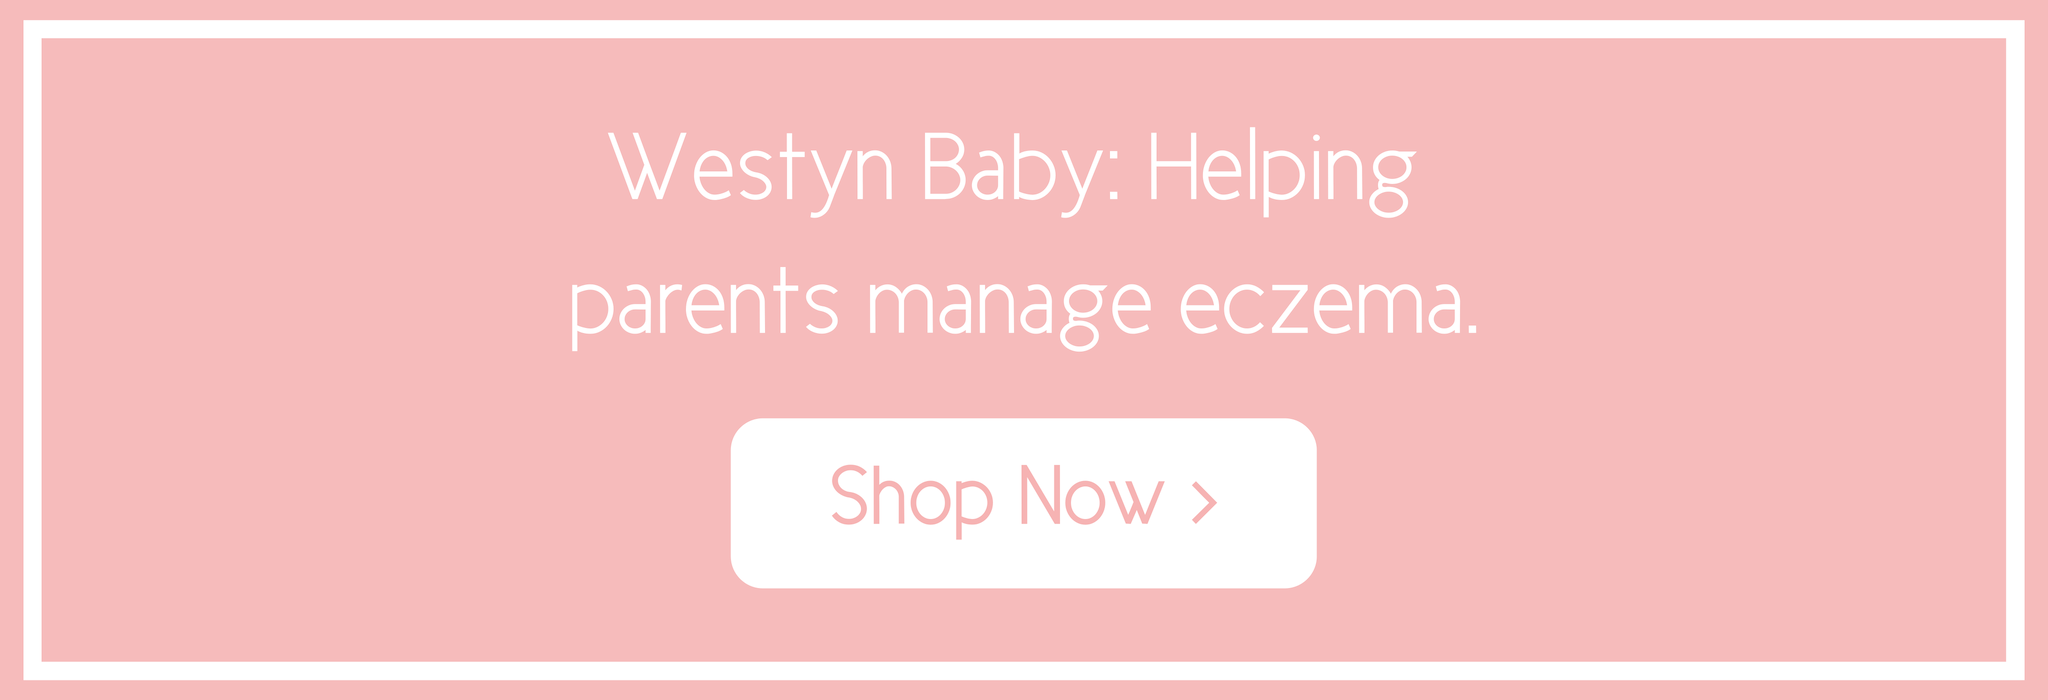 westyn-baby-helping-parents-manage-eczema